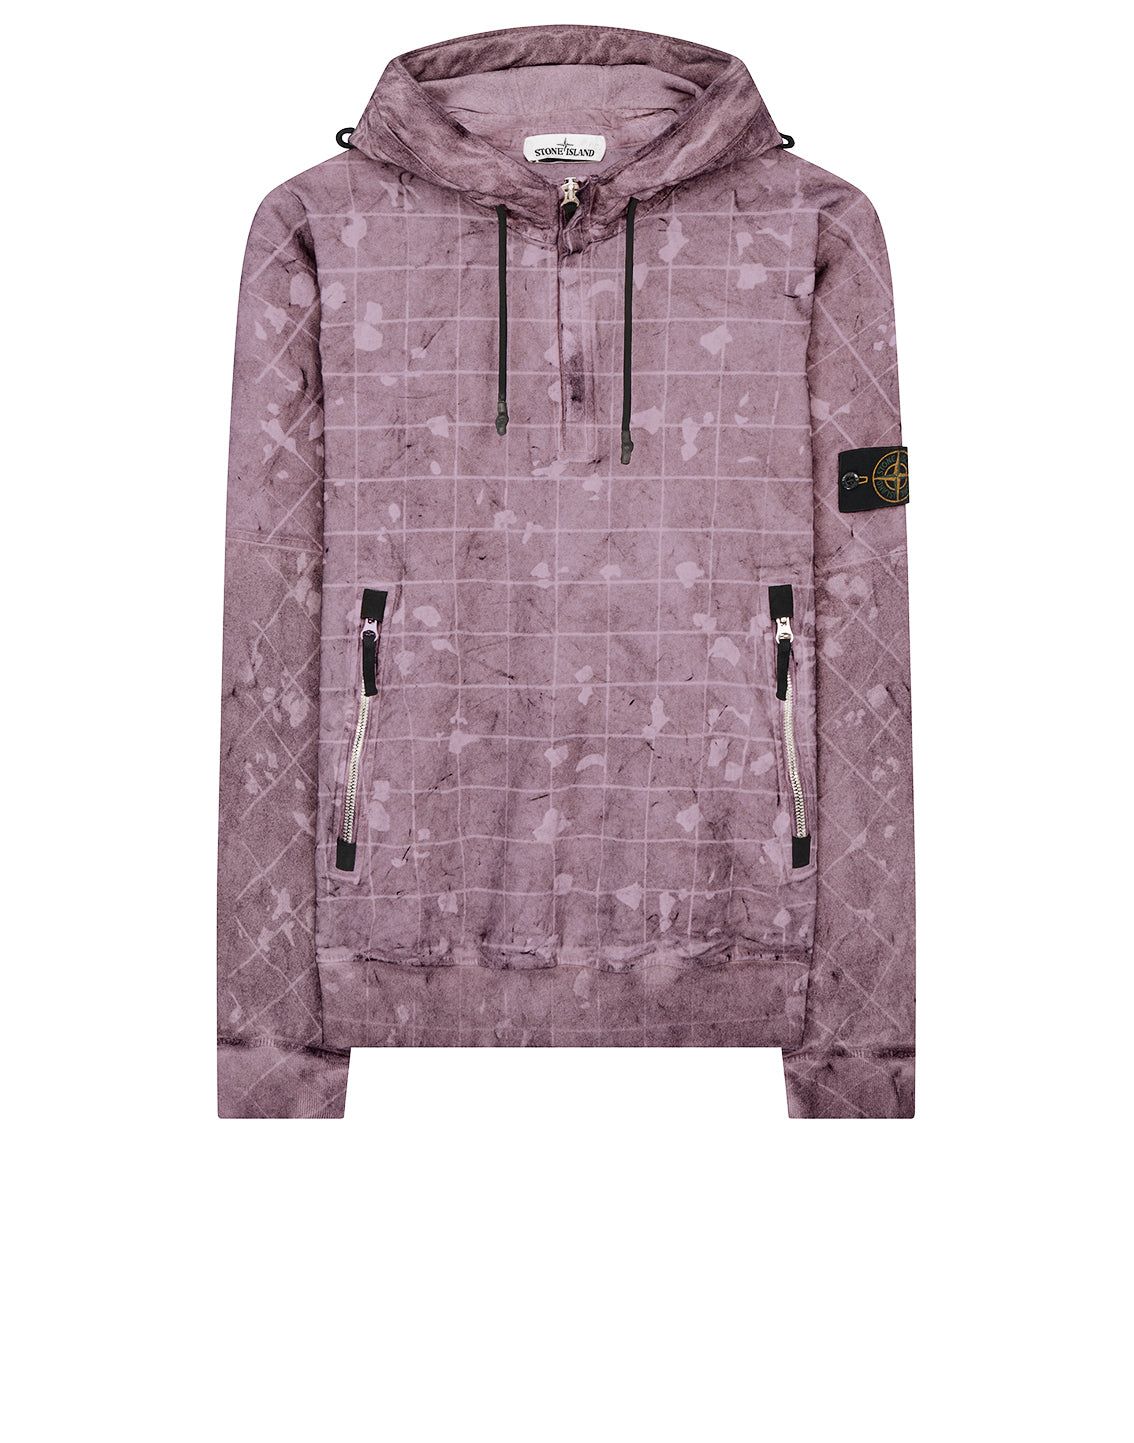 626E2 DUST COLOUR WITH GHILLIE LASER CAMO Sweatshirt in Violet